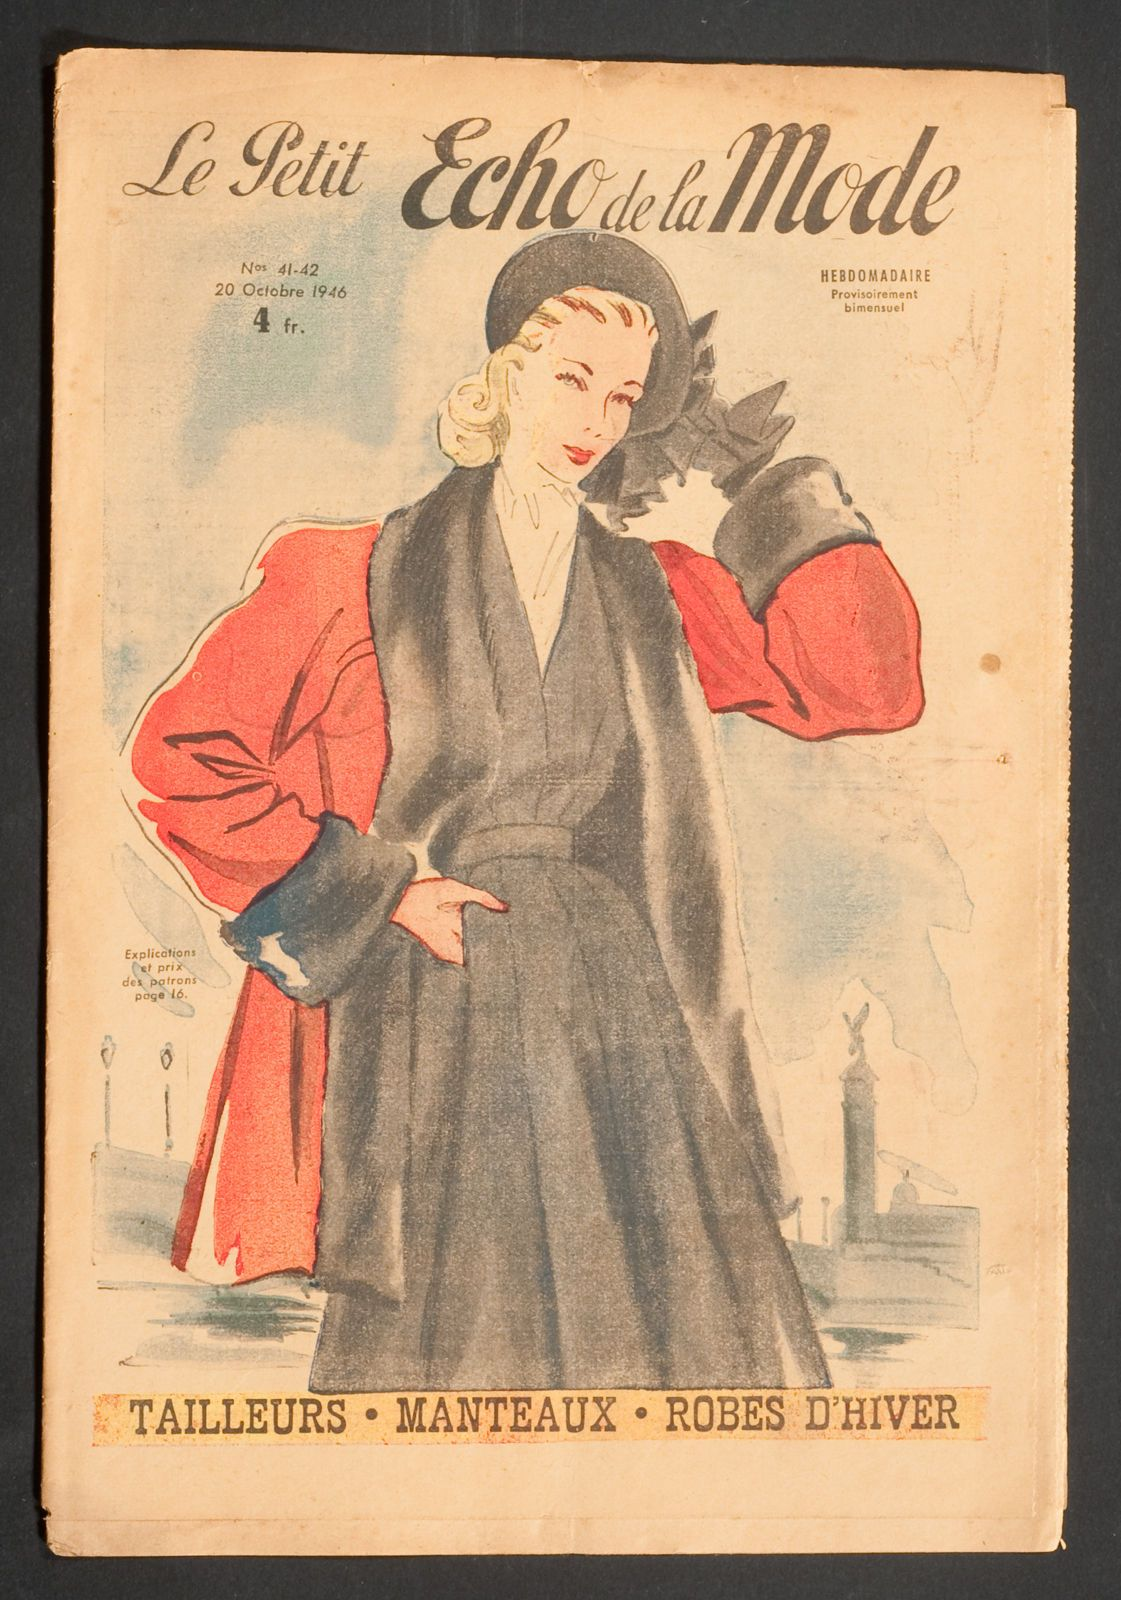 'ECHO DE LA MODE' FRENCH VINTAGE NEWSPAPER 20 OCTOBER 1946 | eBay